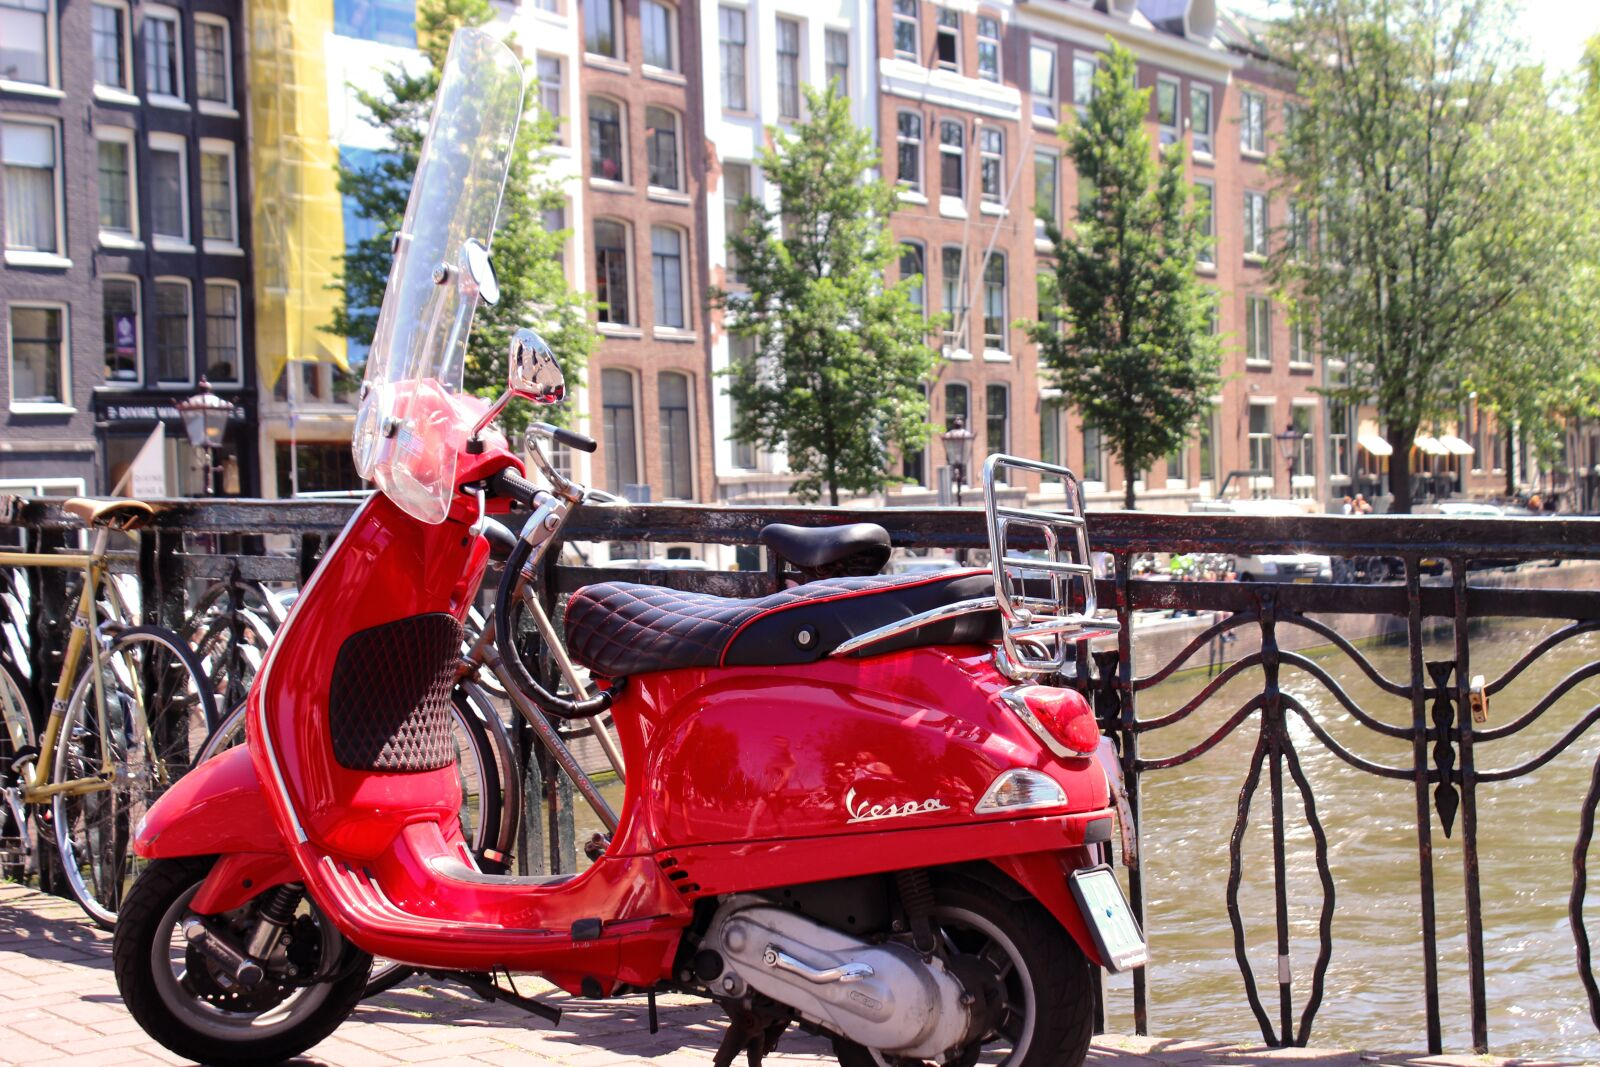 """Canon EOS 600D (Rebel EOS T3i / EOS Kiss X5) sample photo. """"Vespa, motor scooter, roller"""" photography"""